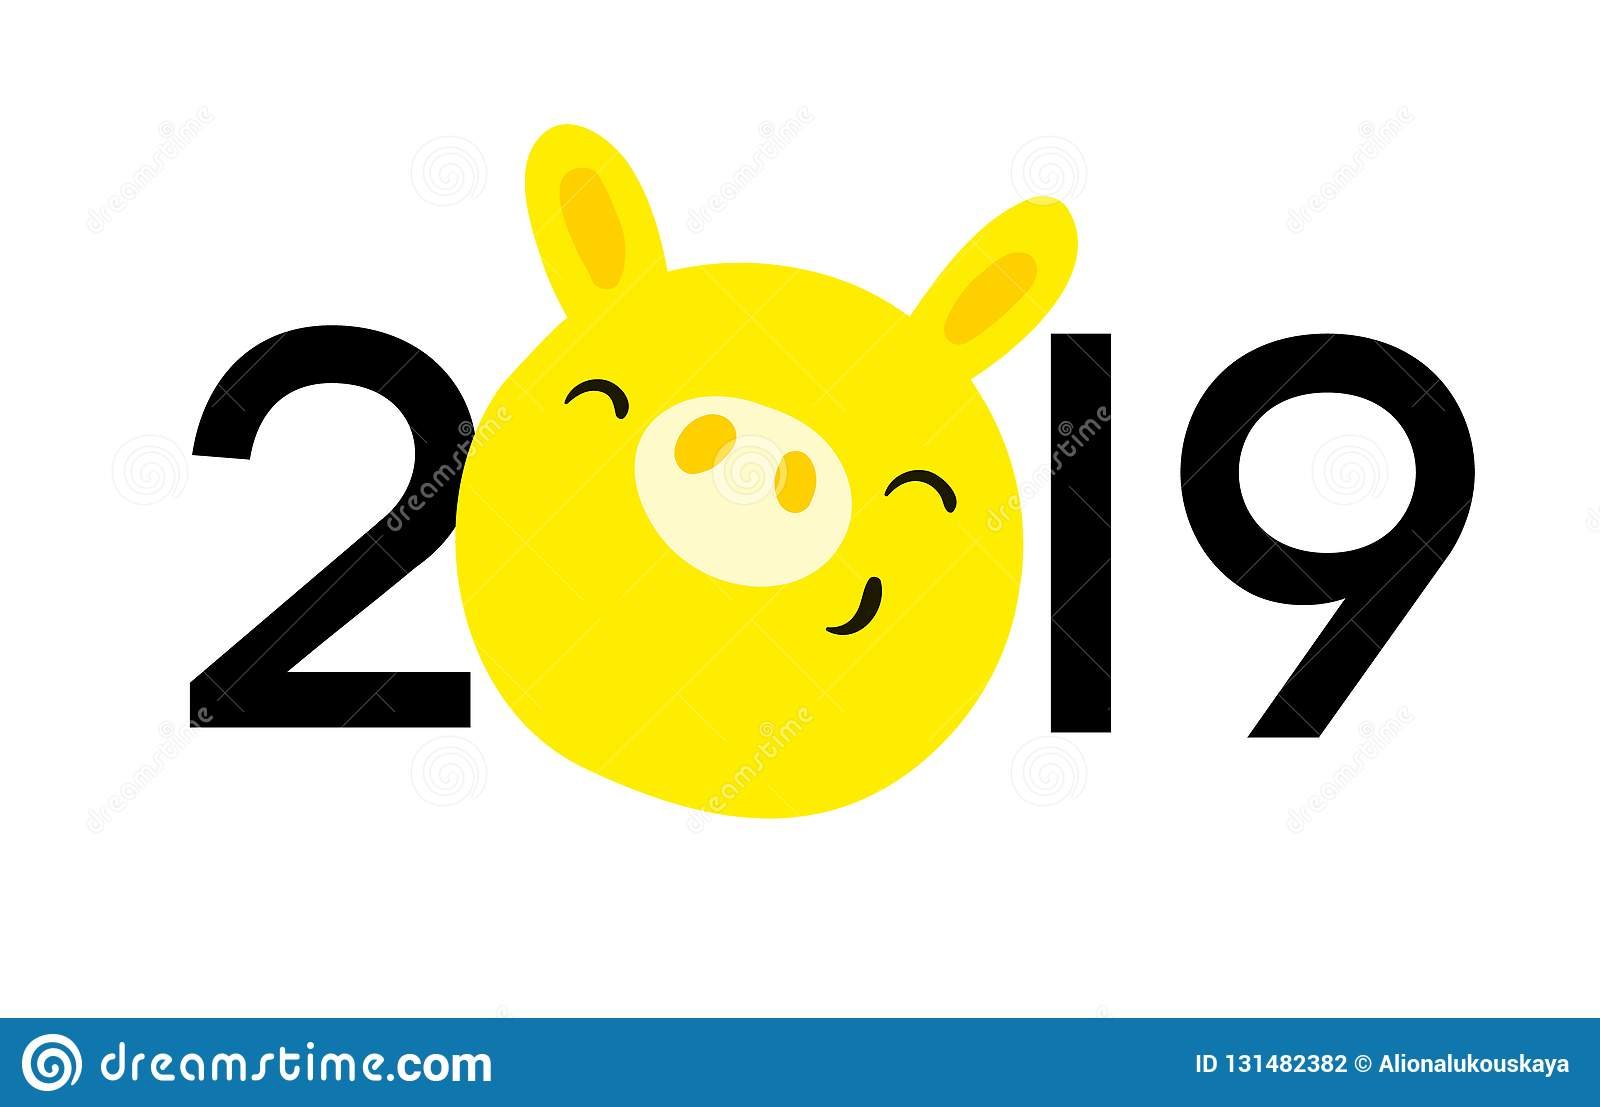 symbol 2019 year in eastern calendar yellow pig logo new year 2019 use for